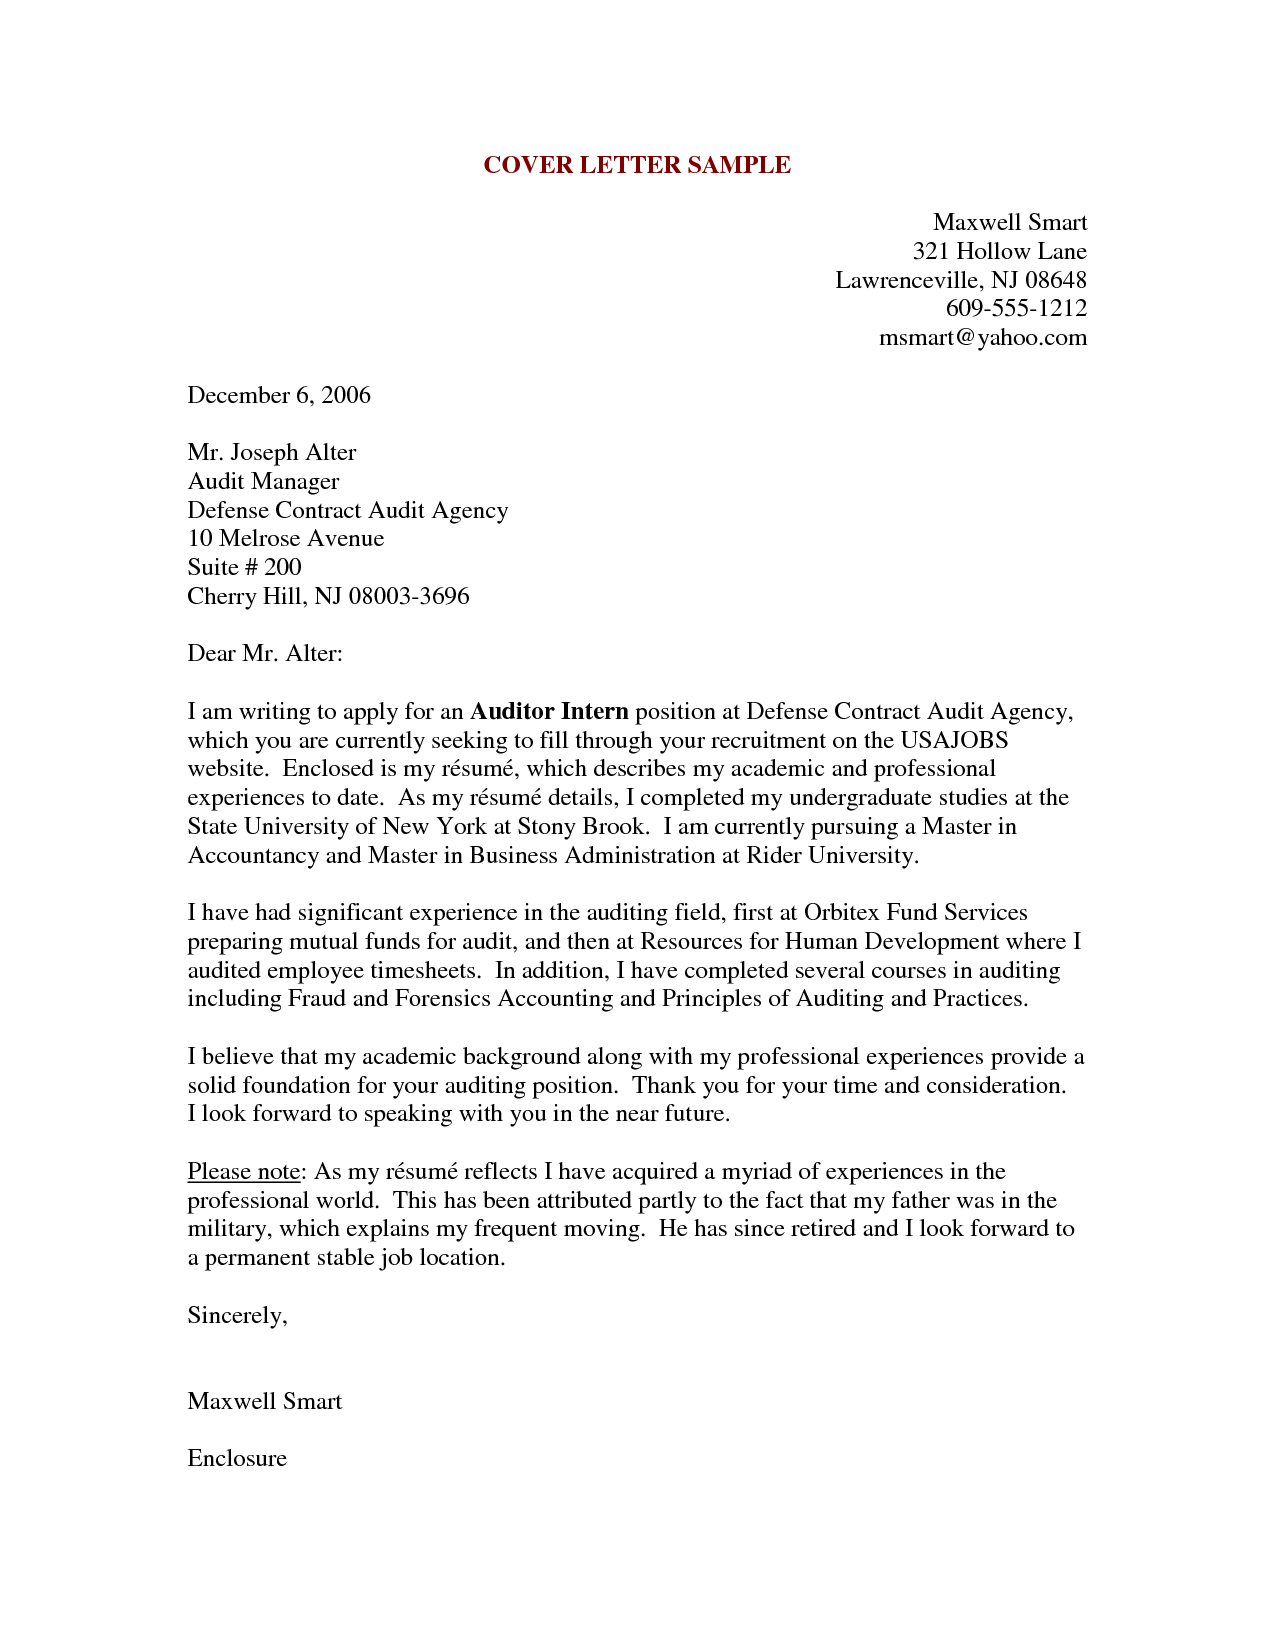 Sample Cover Letters For Resume Tips On Writing A Persuasive Cover Letter Character  Pinterest